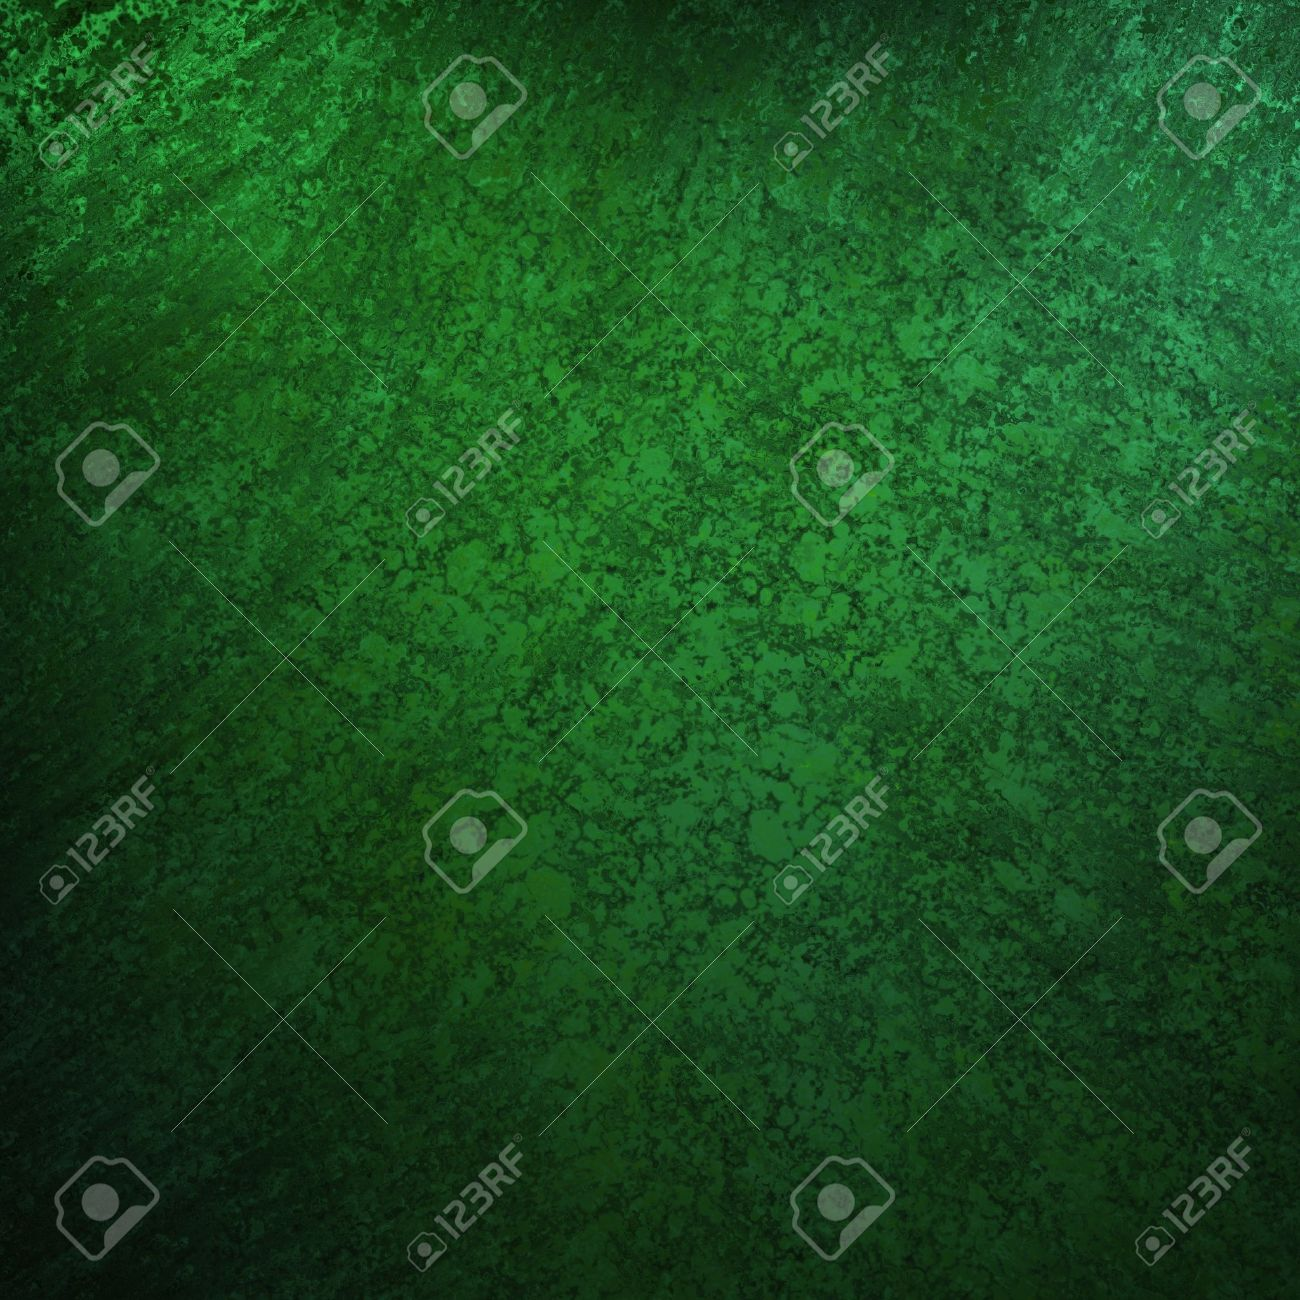 dark green and black background with elegant vintage grunge texture and spotlight with rich color for summer or spring backgrounds Stock Photo - 13056808